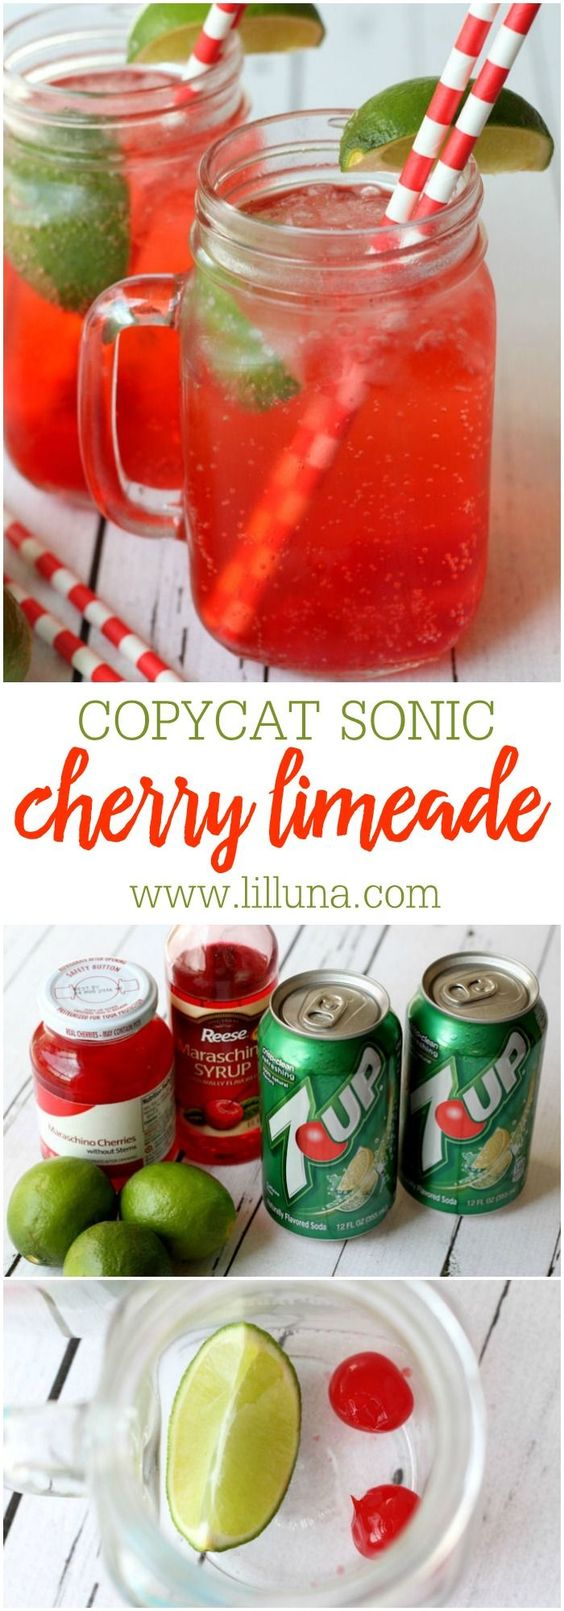 Delicious recipe for Sonic's Cherry Limeade - tastes just like it! { lilluna.com } Ingredients include 7-Up, cherries, a lime, and maraschino syrup!: